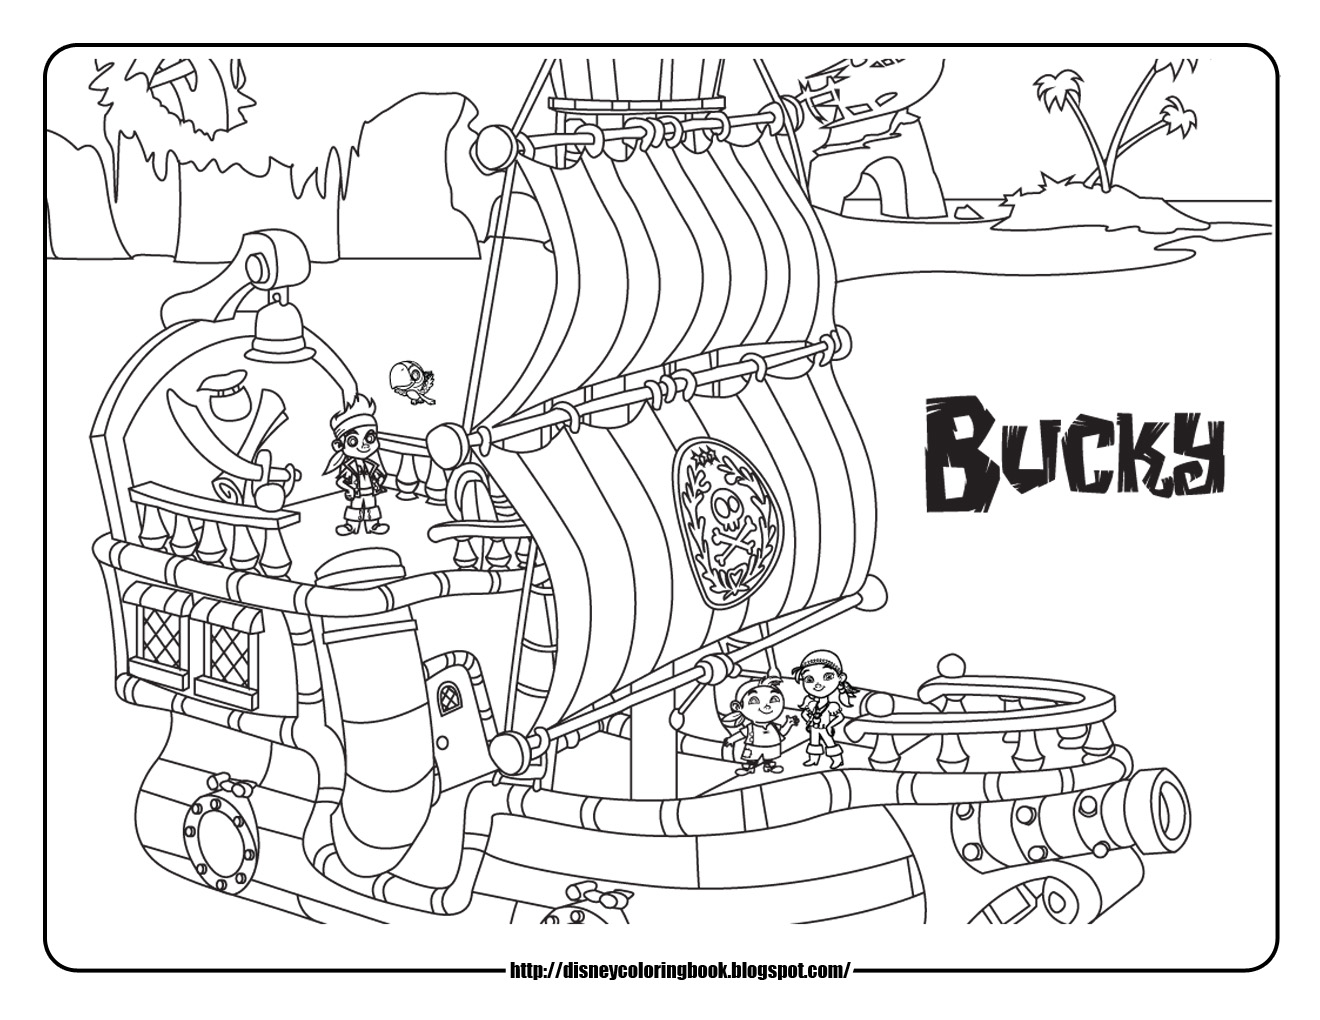 lego pirates coloring pages - Pirate Coloring Pages